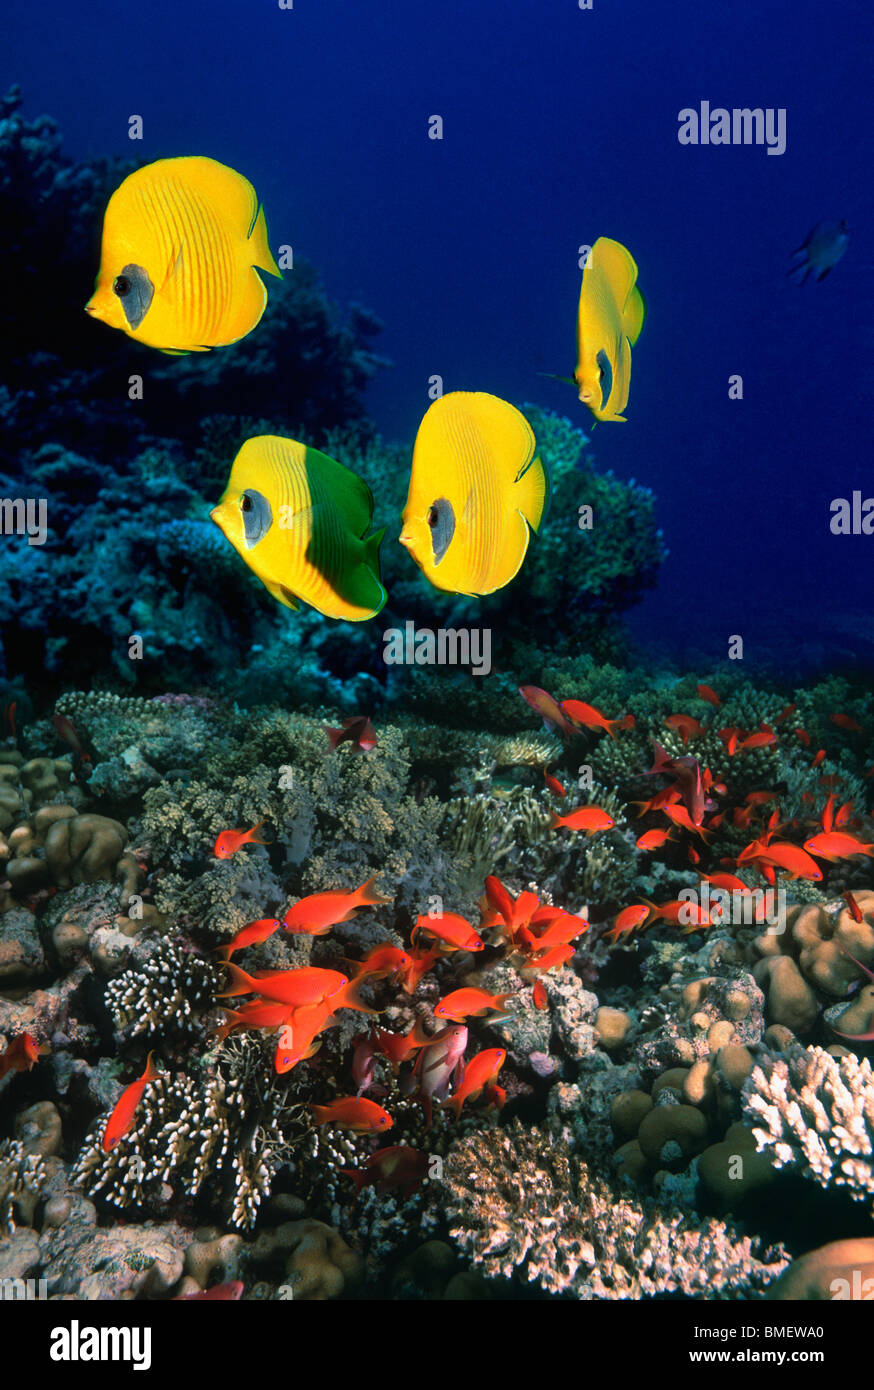 Golden butterflyfish with Lyretail anthias or Goldies over coral reef.  Egypt, Red Sea. - Stock Image